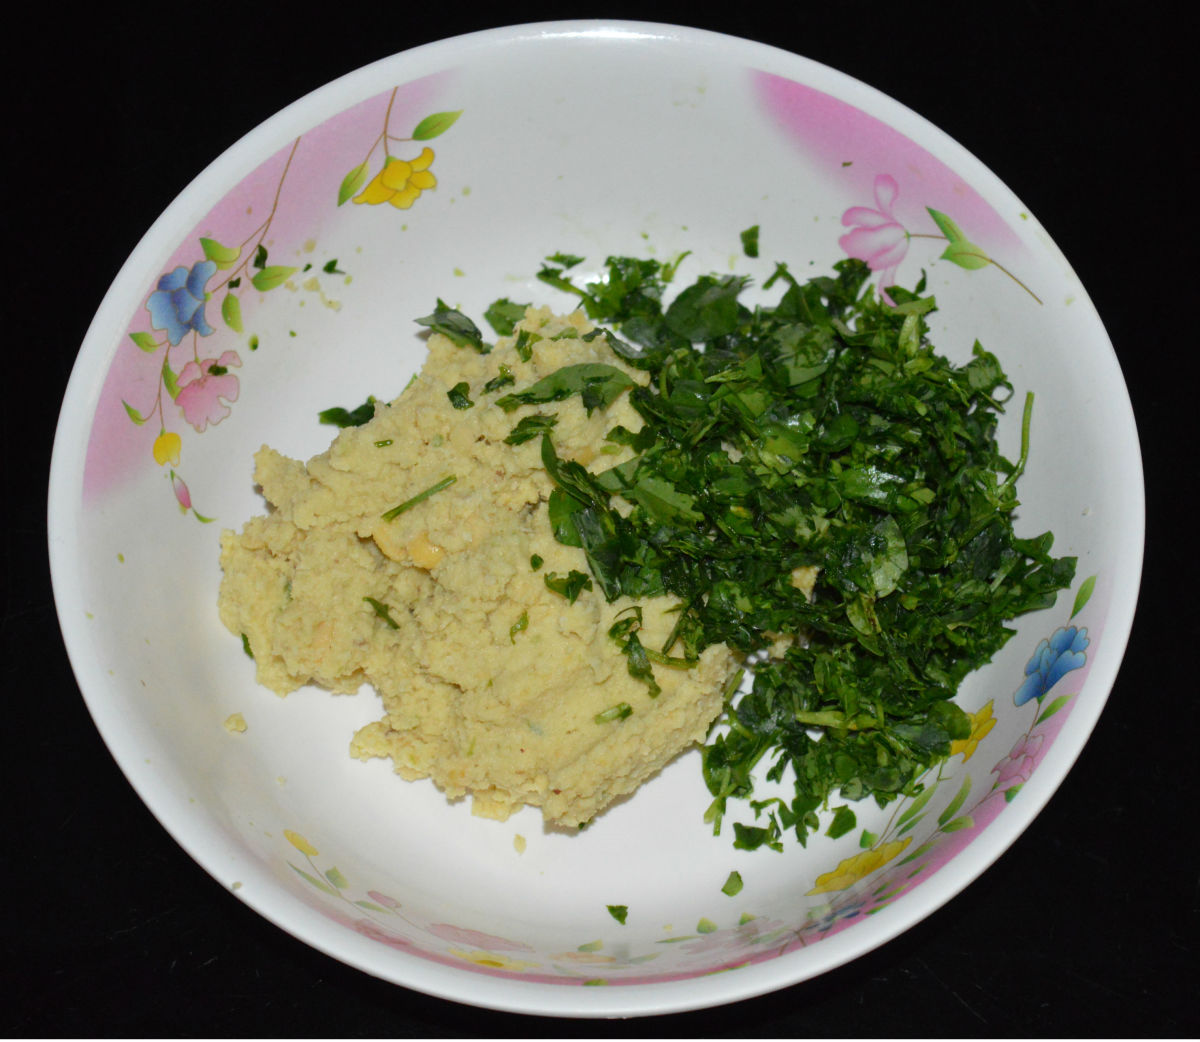 Step two: Collect the paste in a mixing bowl. Add chopped fenugreek leaves. Mix well.